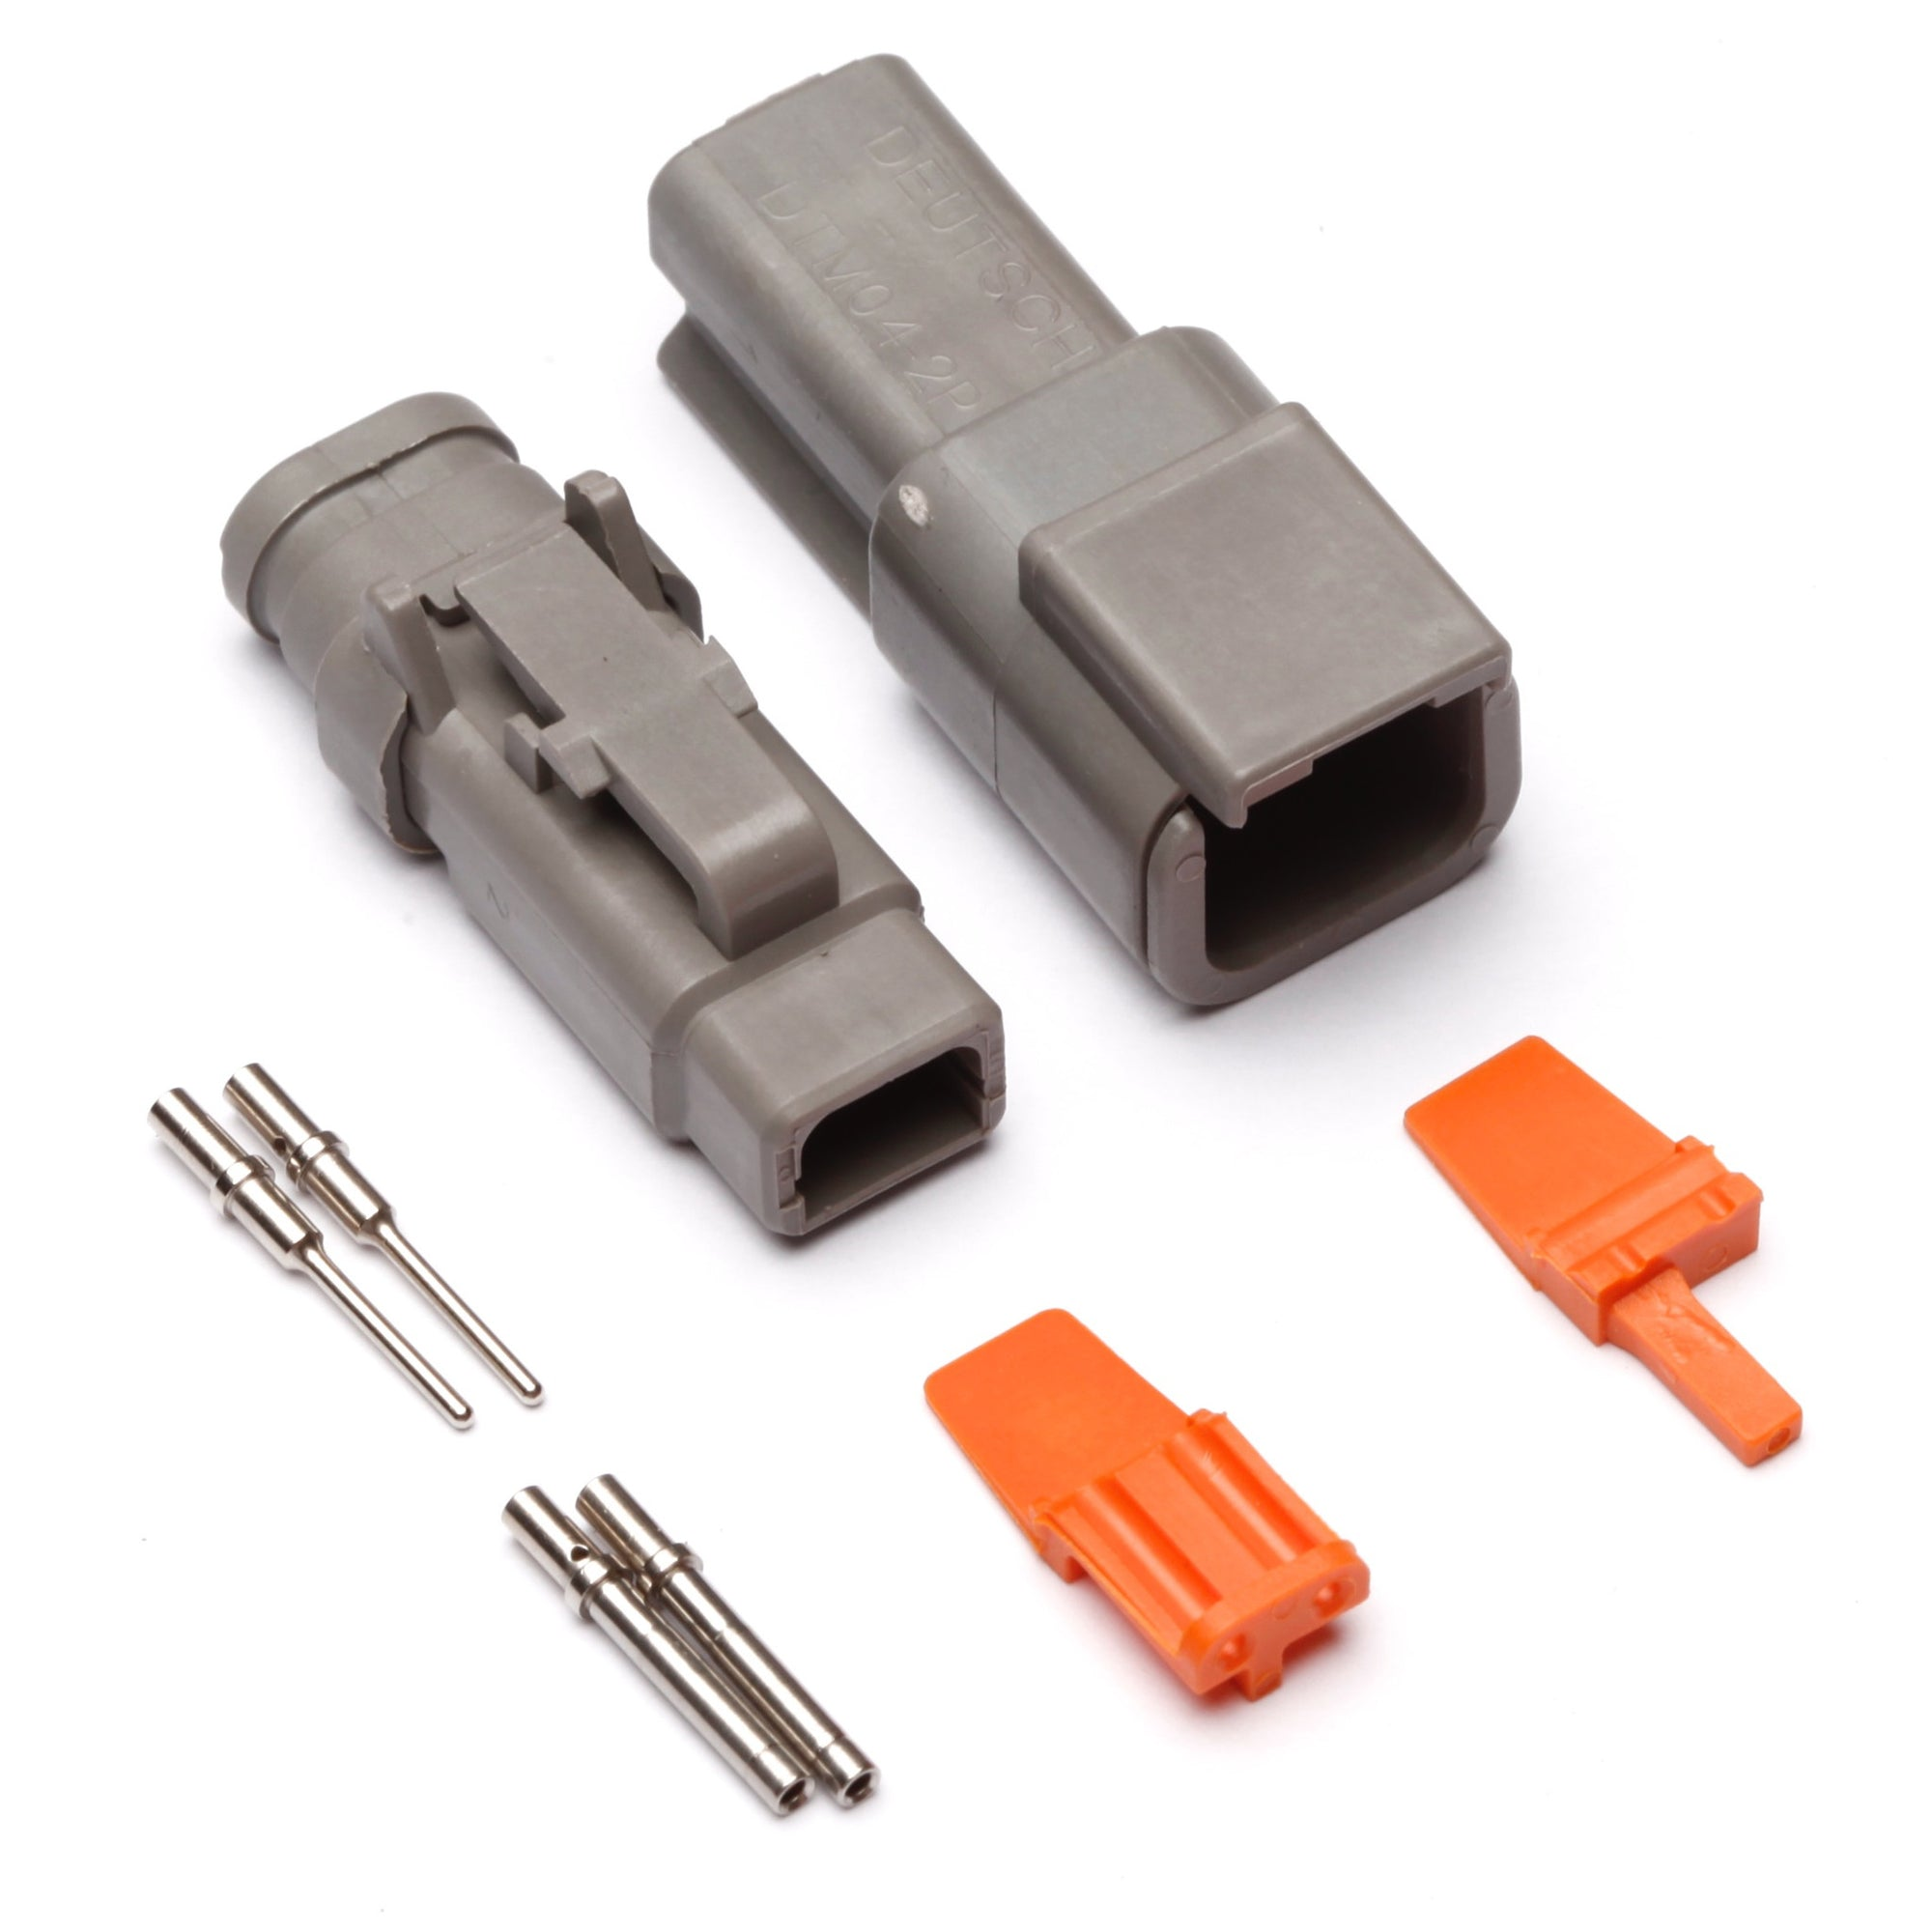 Connectors - DTM Connector Kits